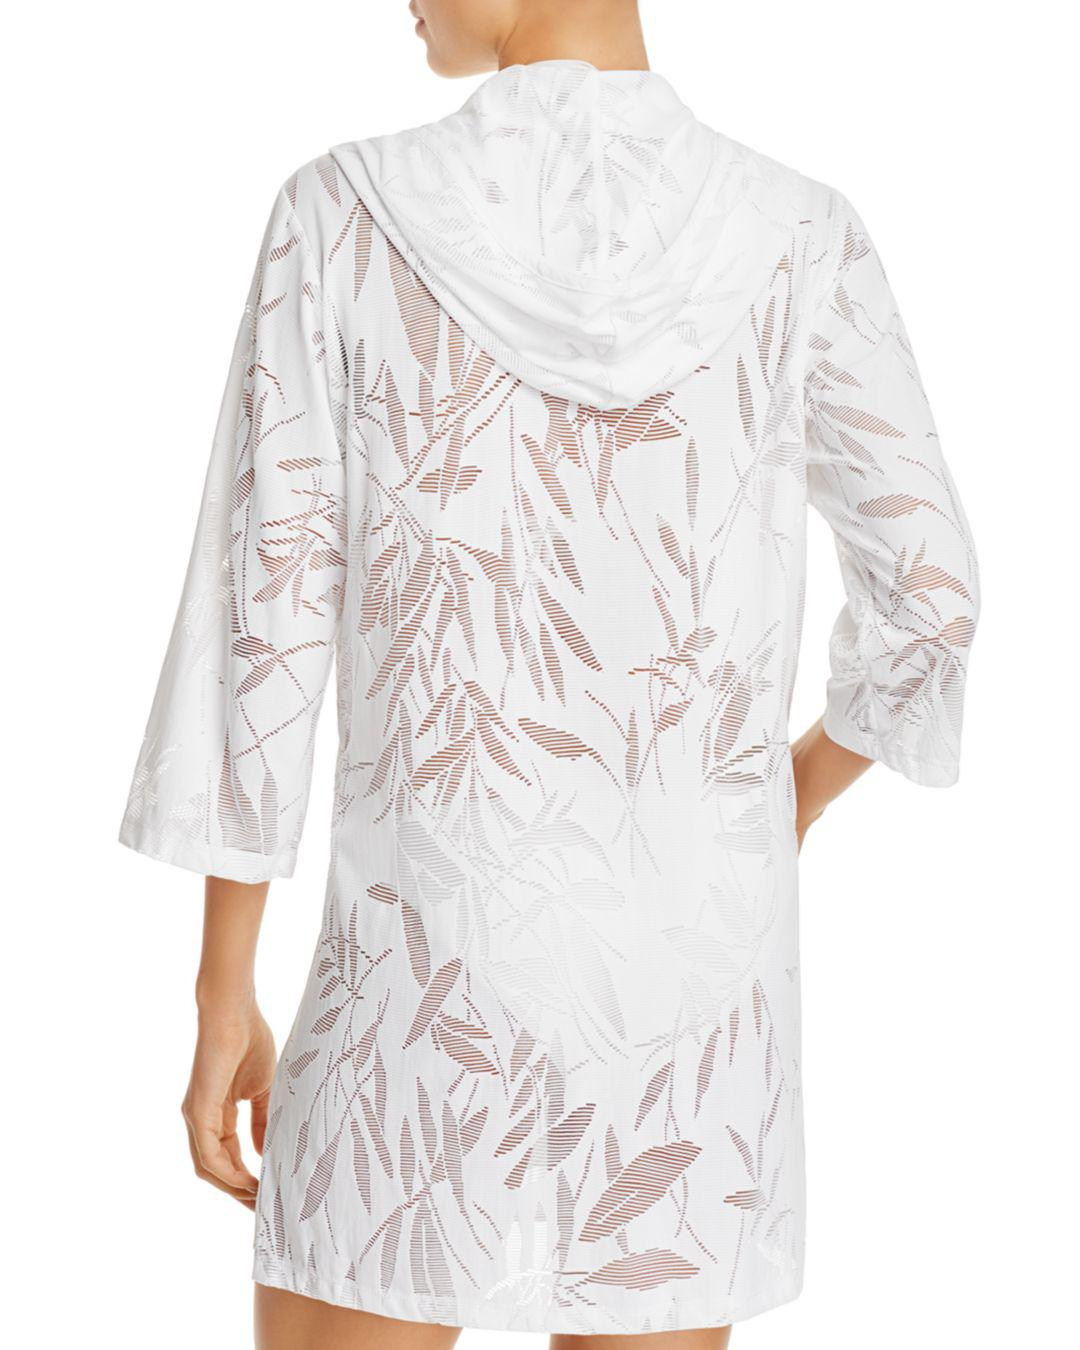 0e8d7f8b4b Lyst - J Valdi Bamboo Tunic Swim Cover-up in White